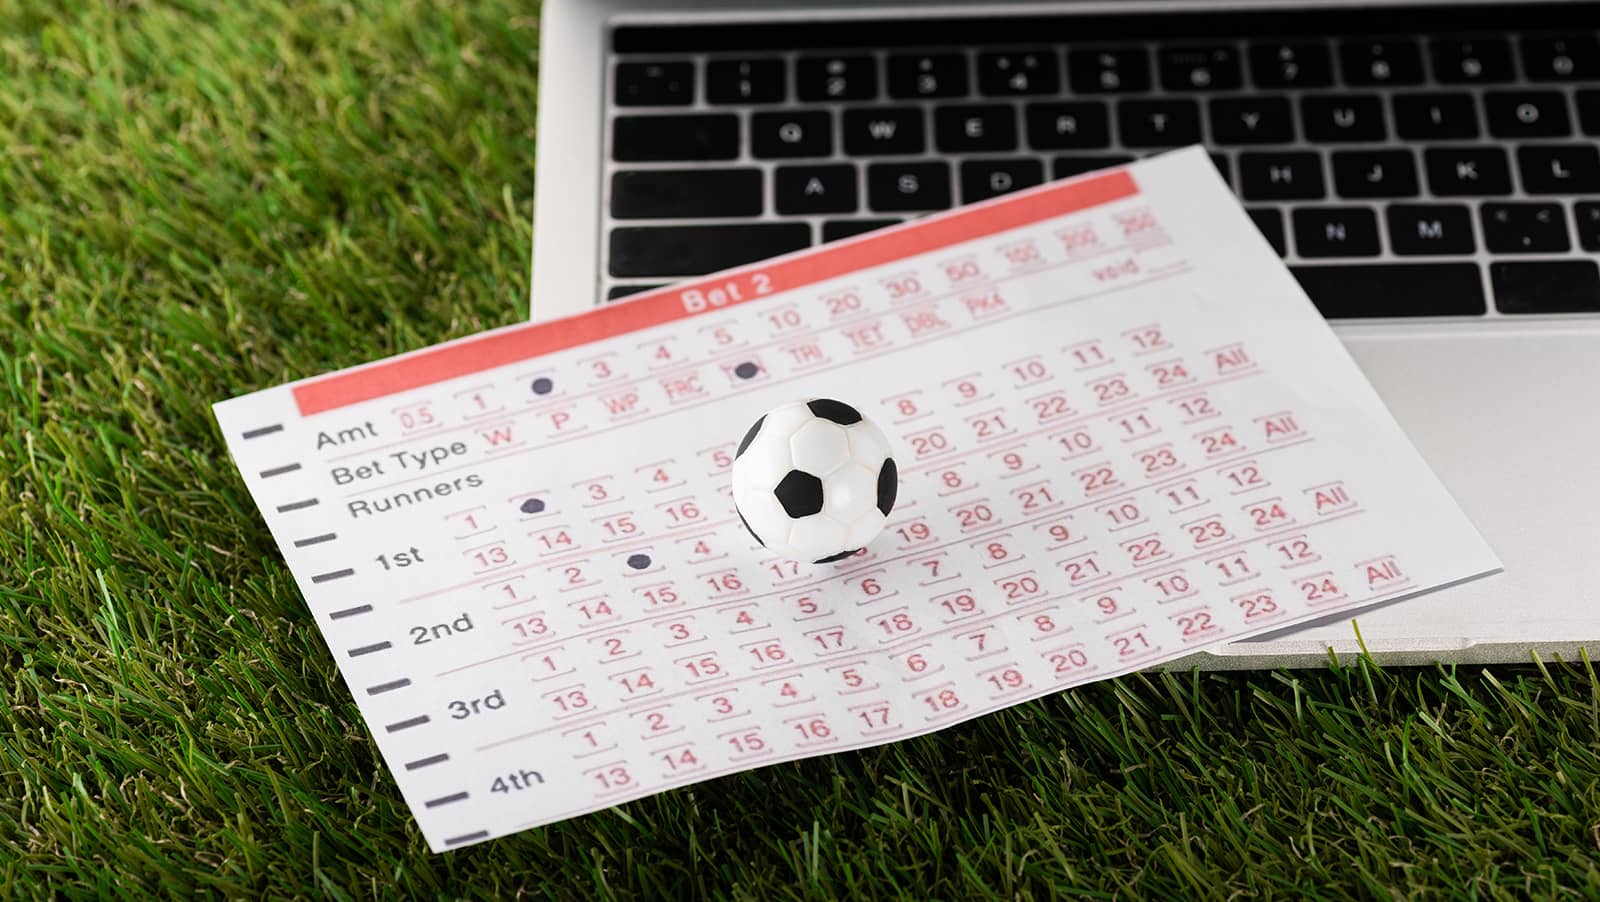 The Seminole hope to convince Florida on mobile sports gambling ...